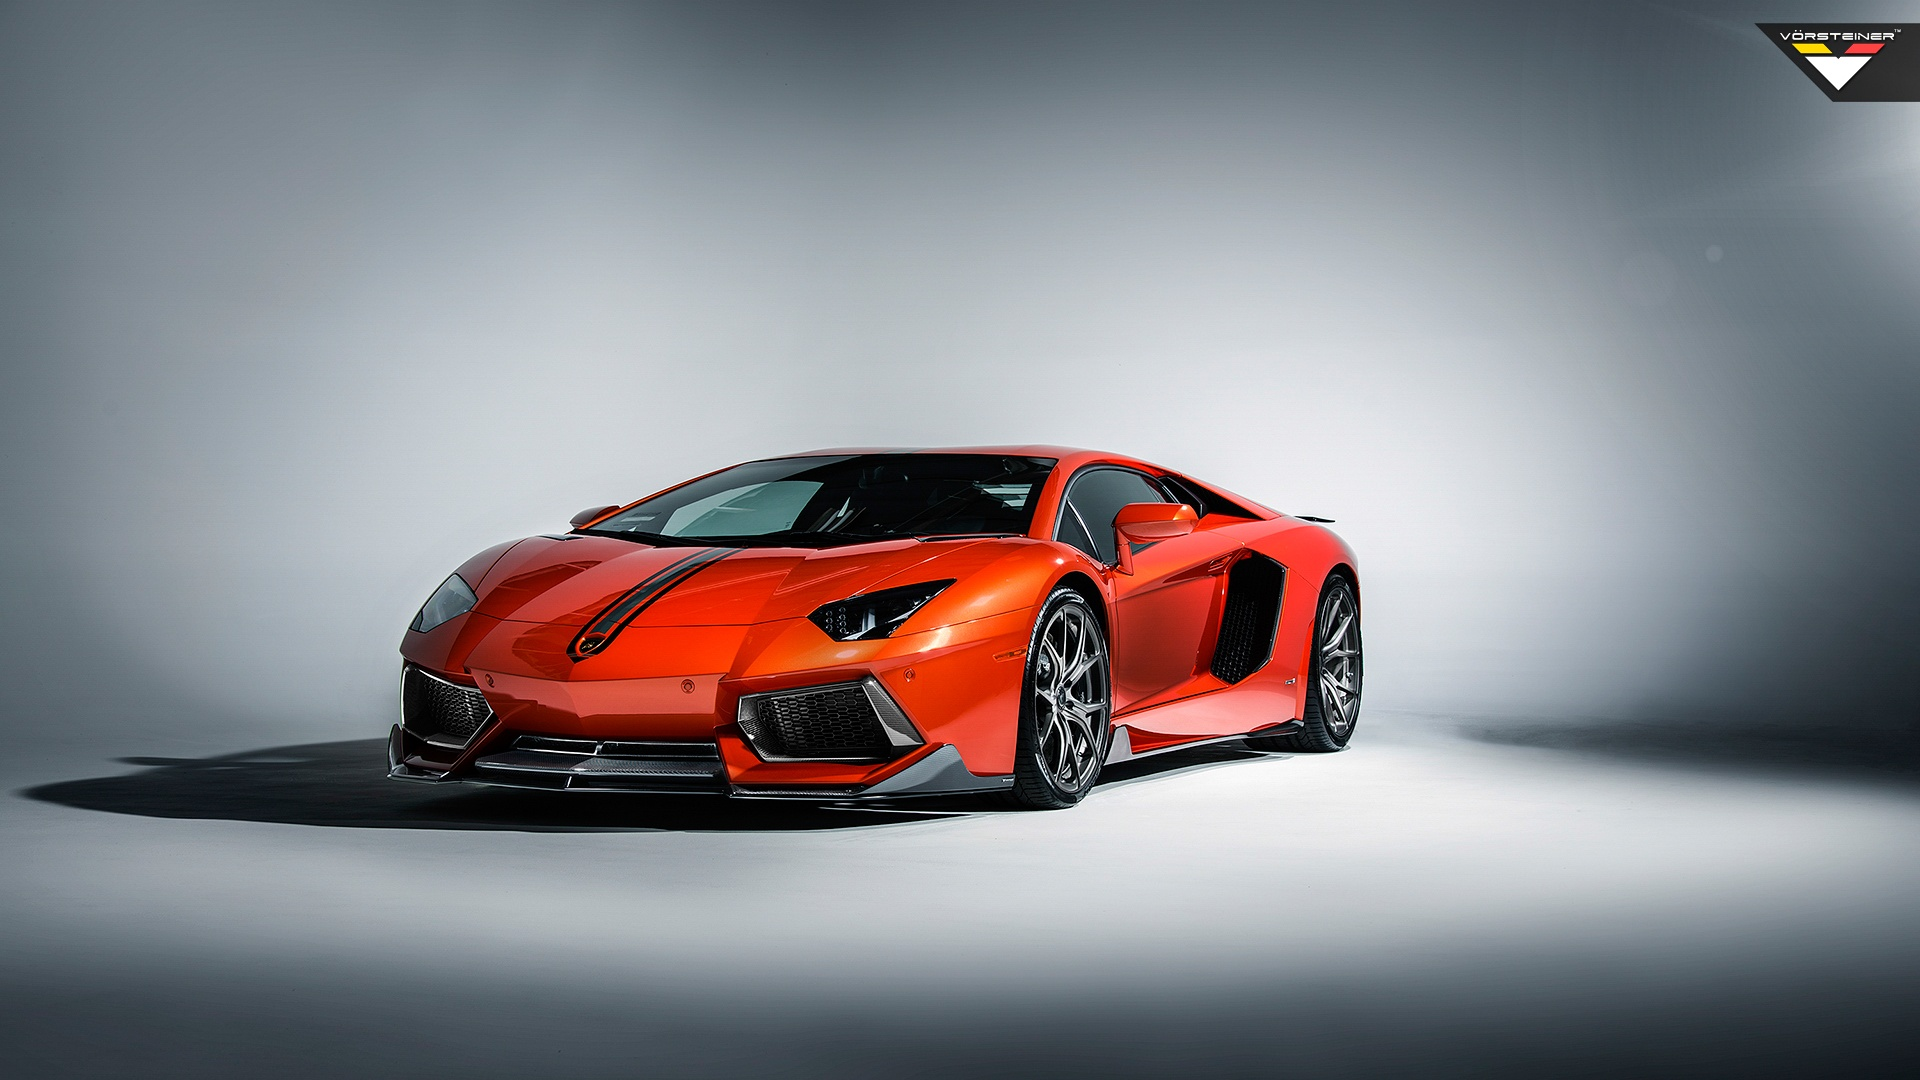 Exotic Cars Wallpaper Pack 25 Exotic Amp Awesome Car Wallpapers Hd Edition Stugon